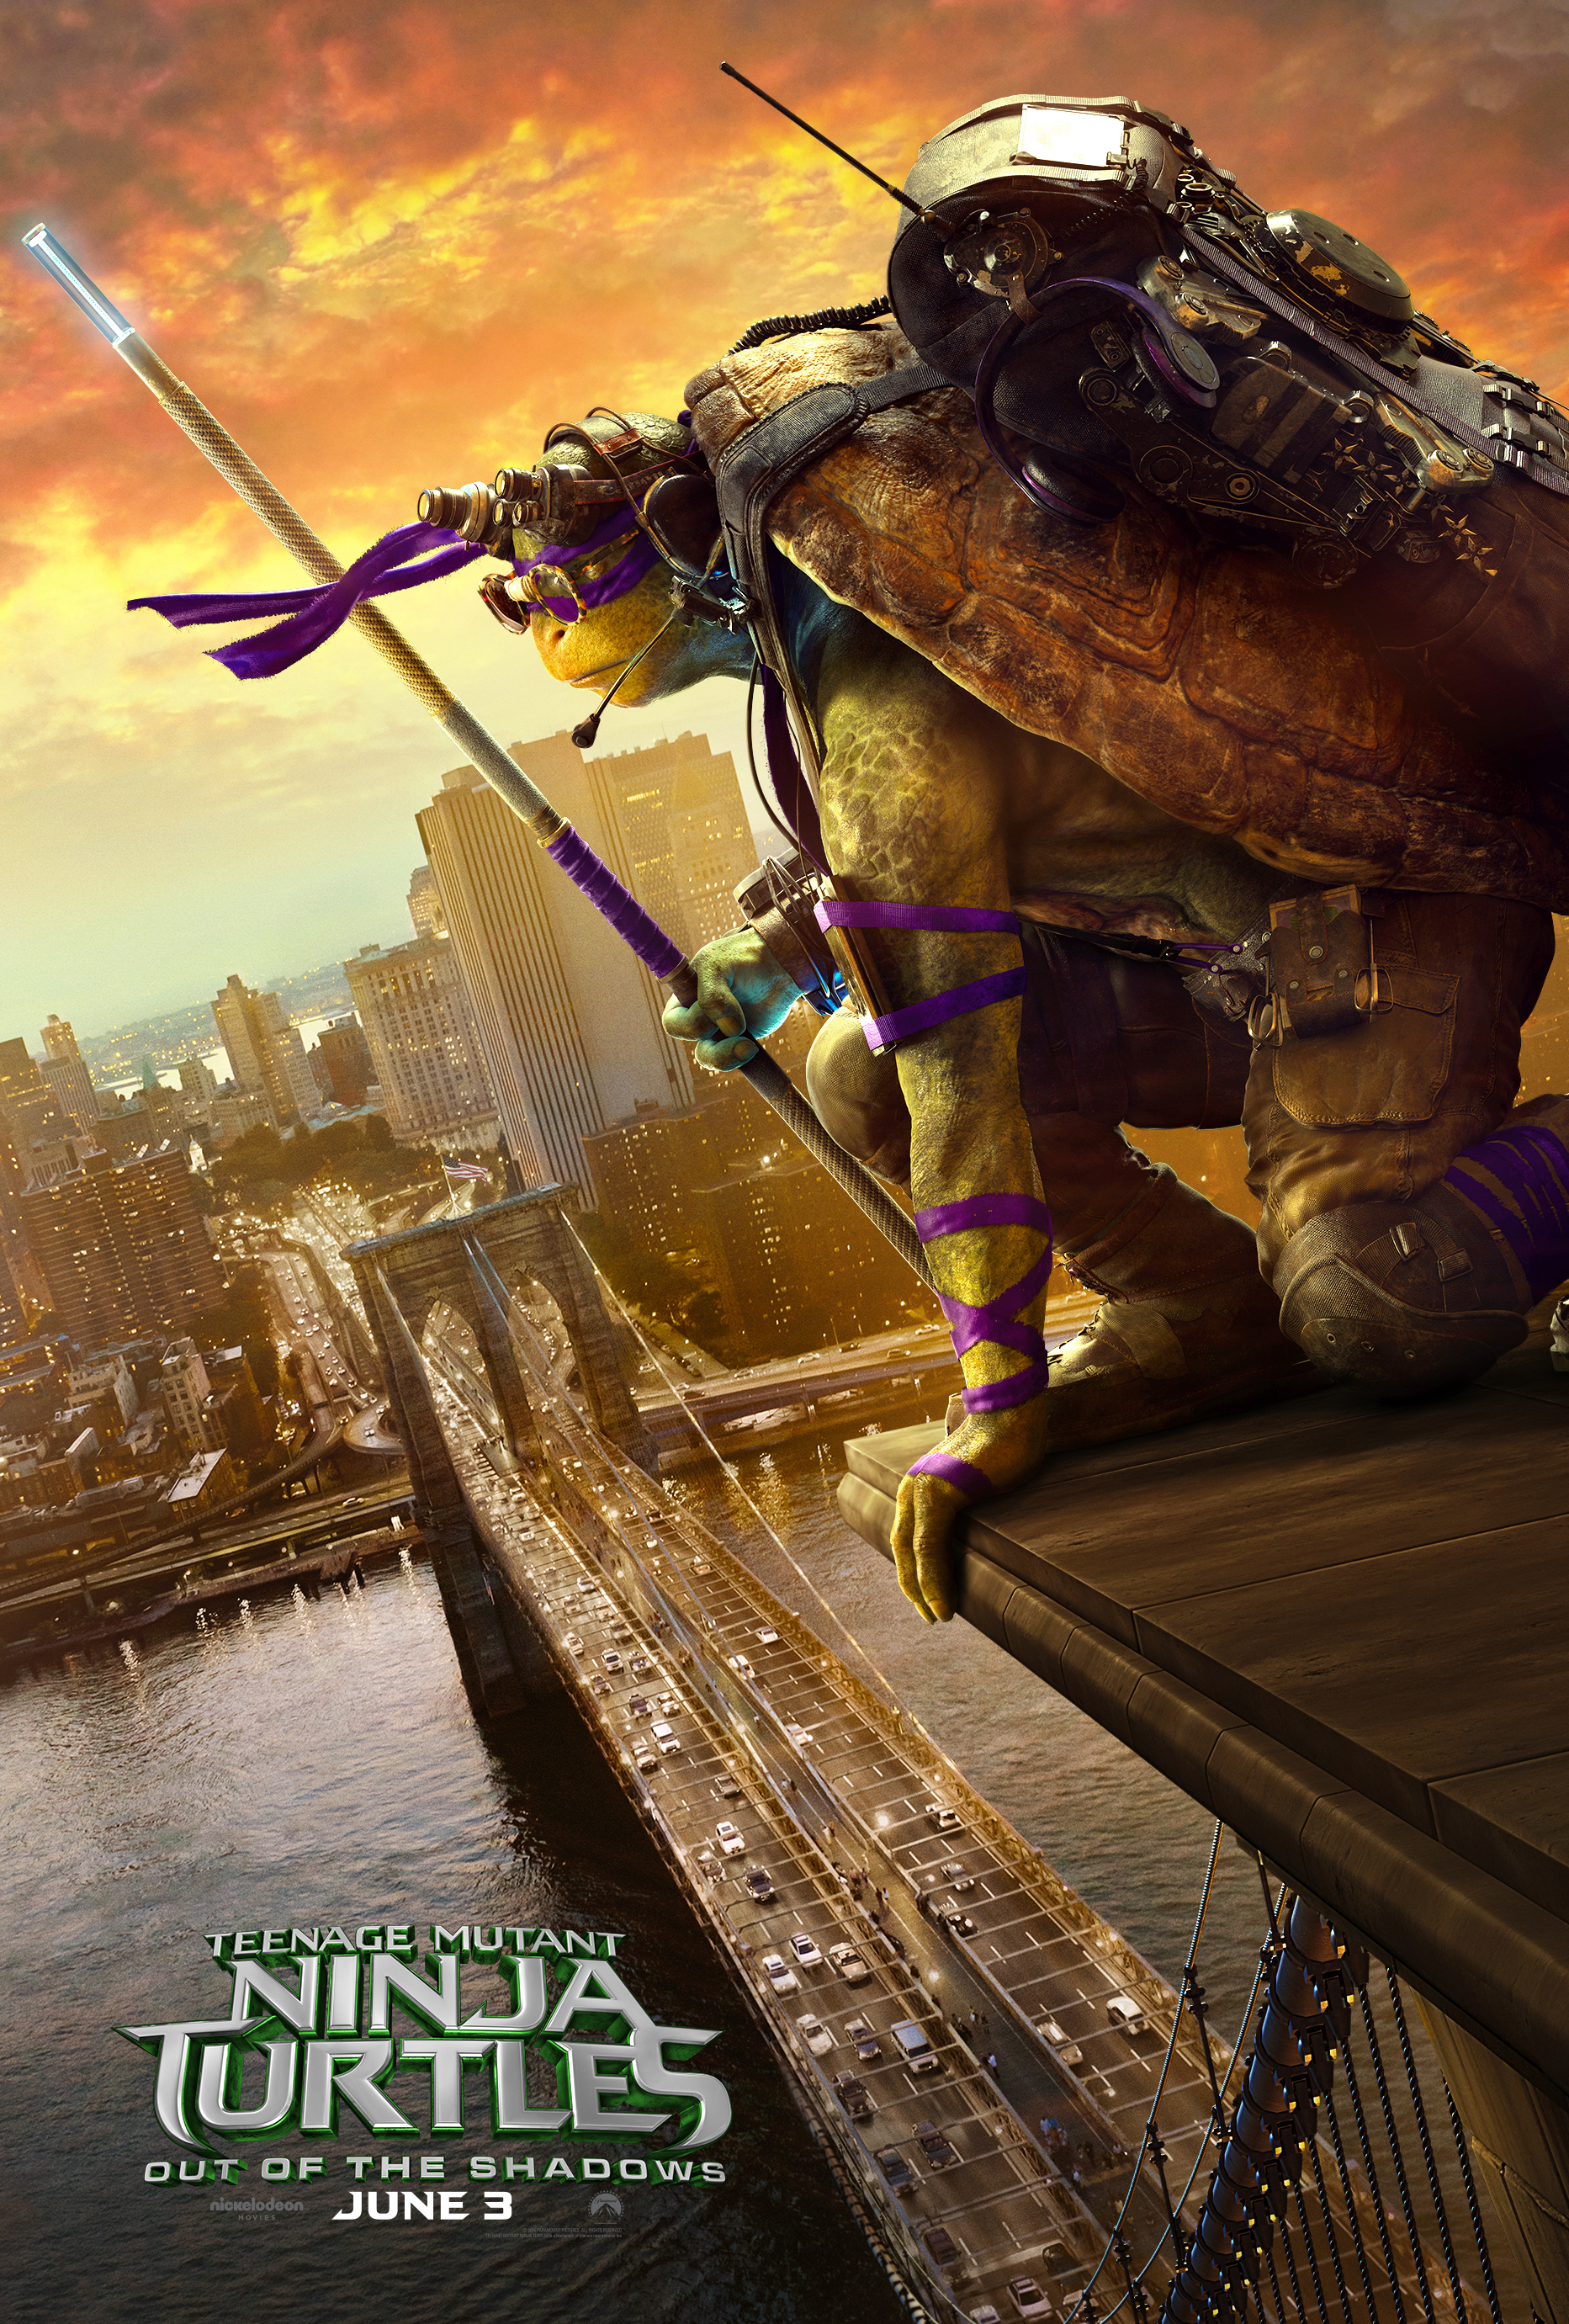 Teenage Mutant Ninja Turtles Out Of The Shadows Paramount Teenage Mutant Ninja Turtles Wikia Fandom